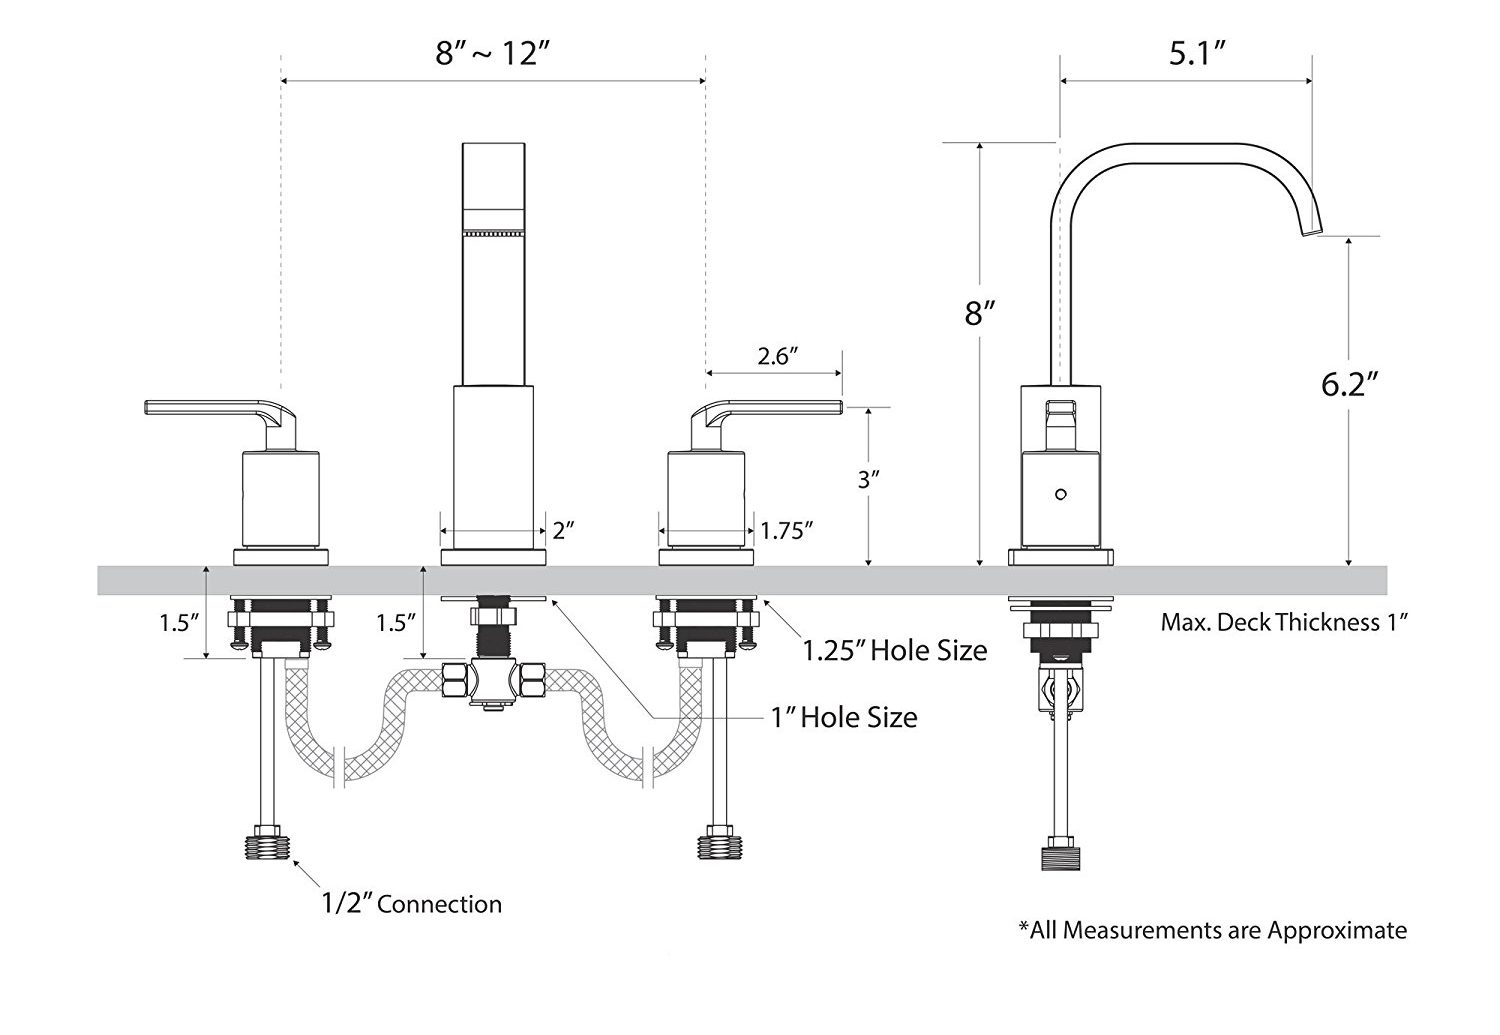 Dual Handle Stainless Steel Bathroom And Kitchen Sink Faucet All In One Installation Manuals